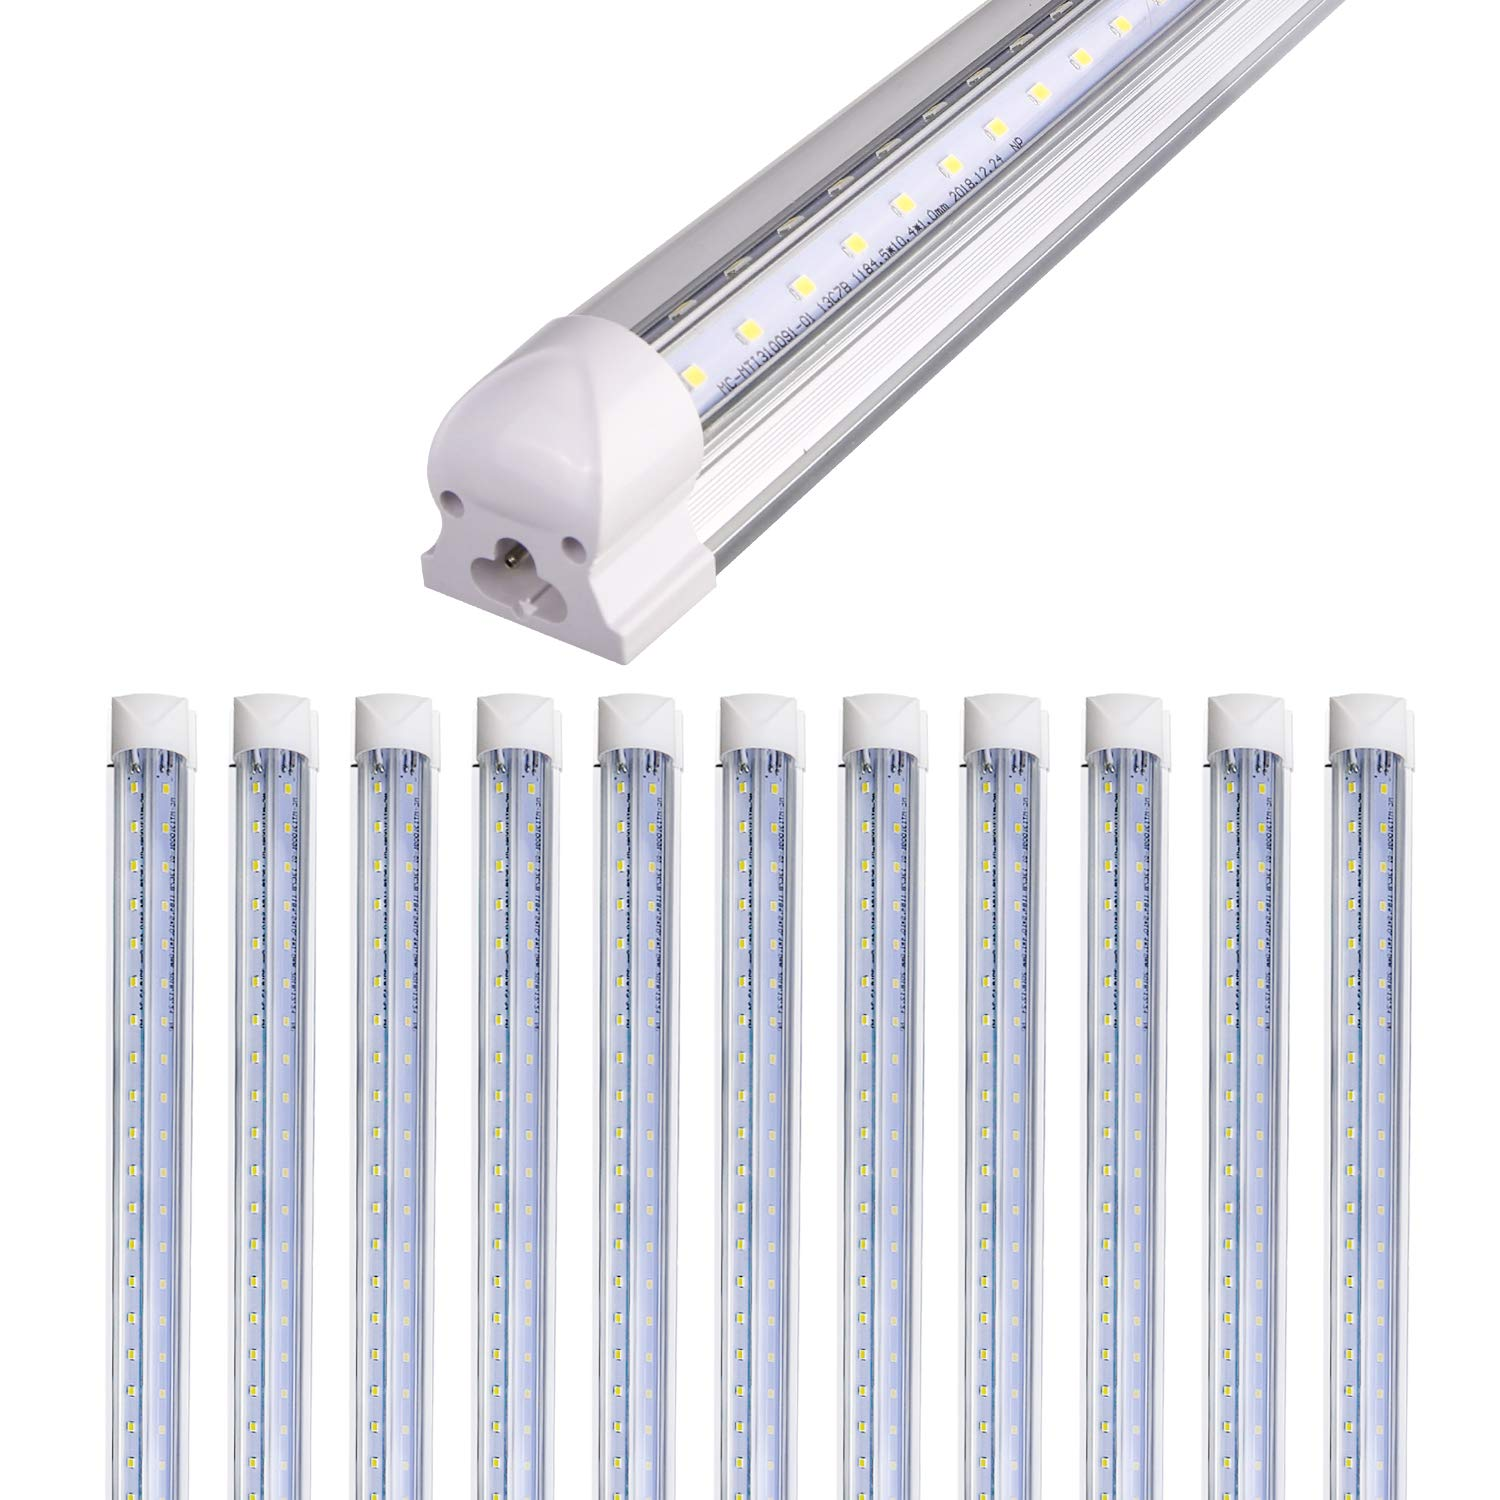 Hykolity 12 Pack Linkable Shop Light, 8FT Industrial Linear Strip Light for Garage, 72W (150W Equiv.) 9360lm 5000K Daylight Clear V-Shaped Integrated Fixture for Workshop Warehouse Basement,ETL List